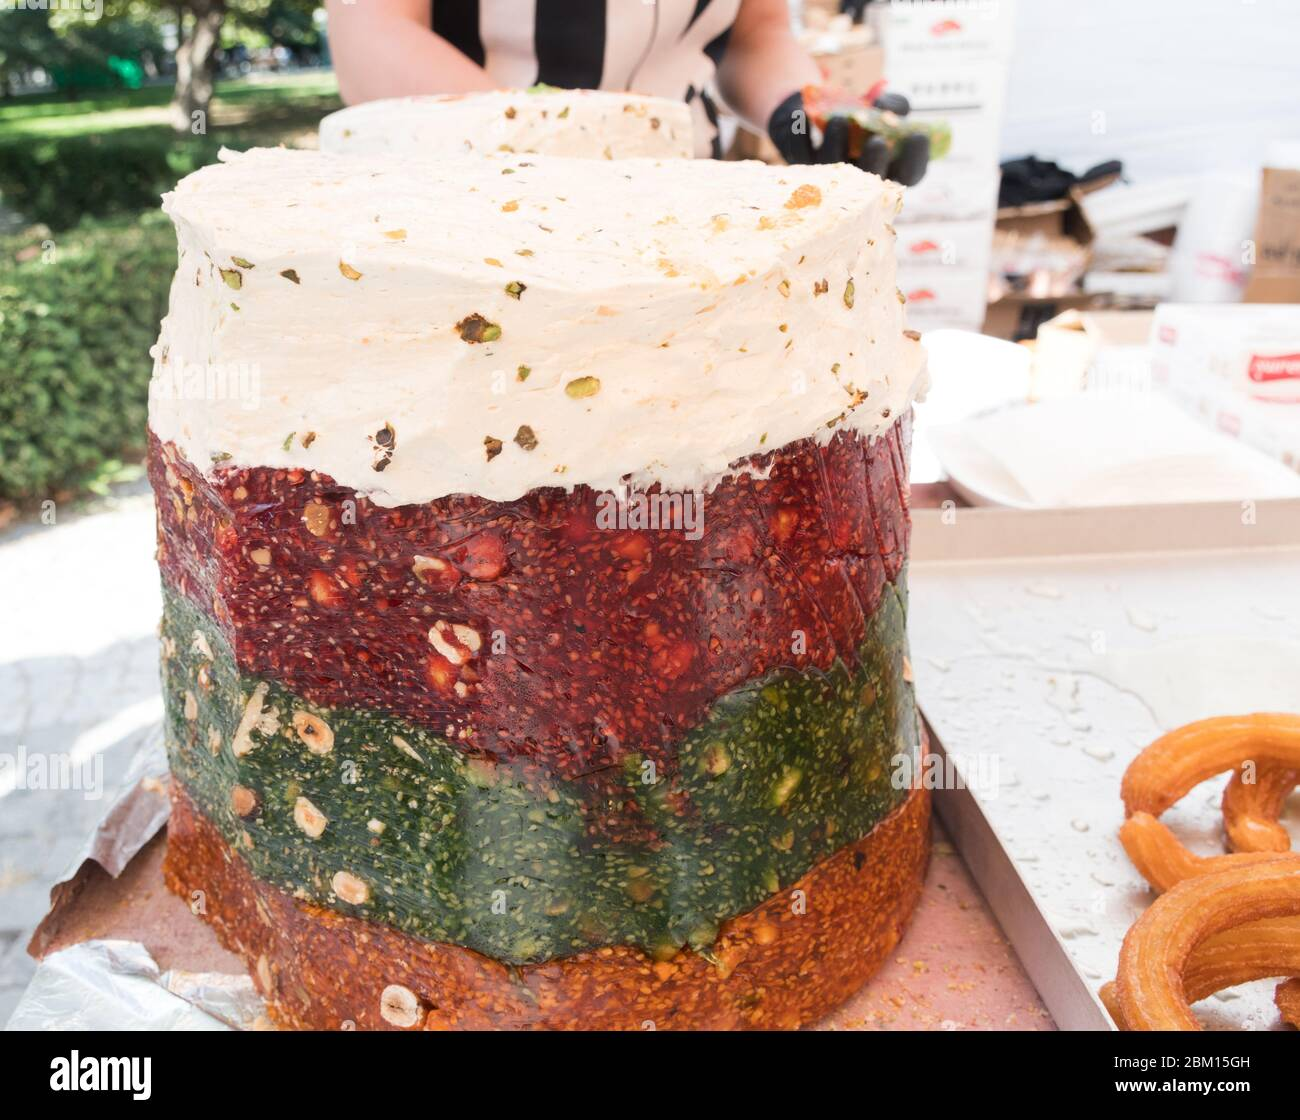 Cezerye, a semi-gelatinous traditional Turkish dessert made from caramelised carrots, shredded coconut, and roasted walnuts, hazelnuts, or pistachios. Stock Photo